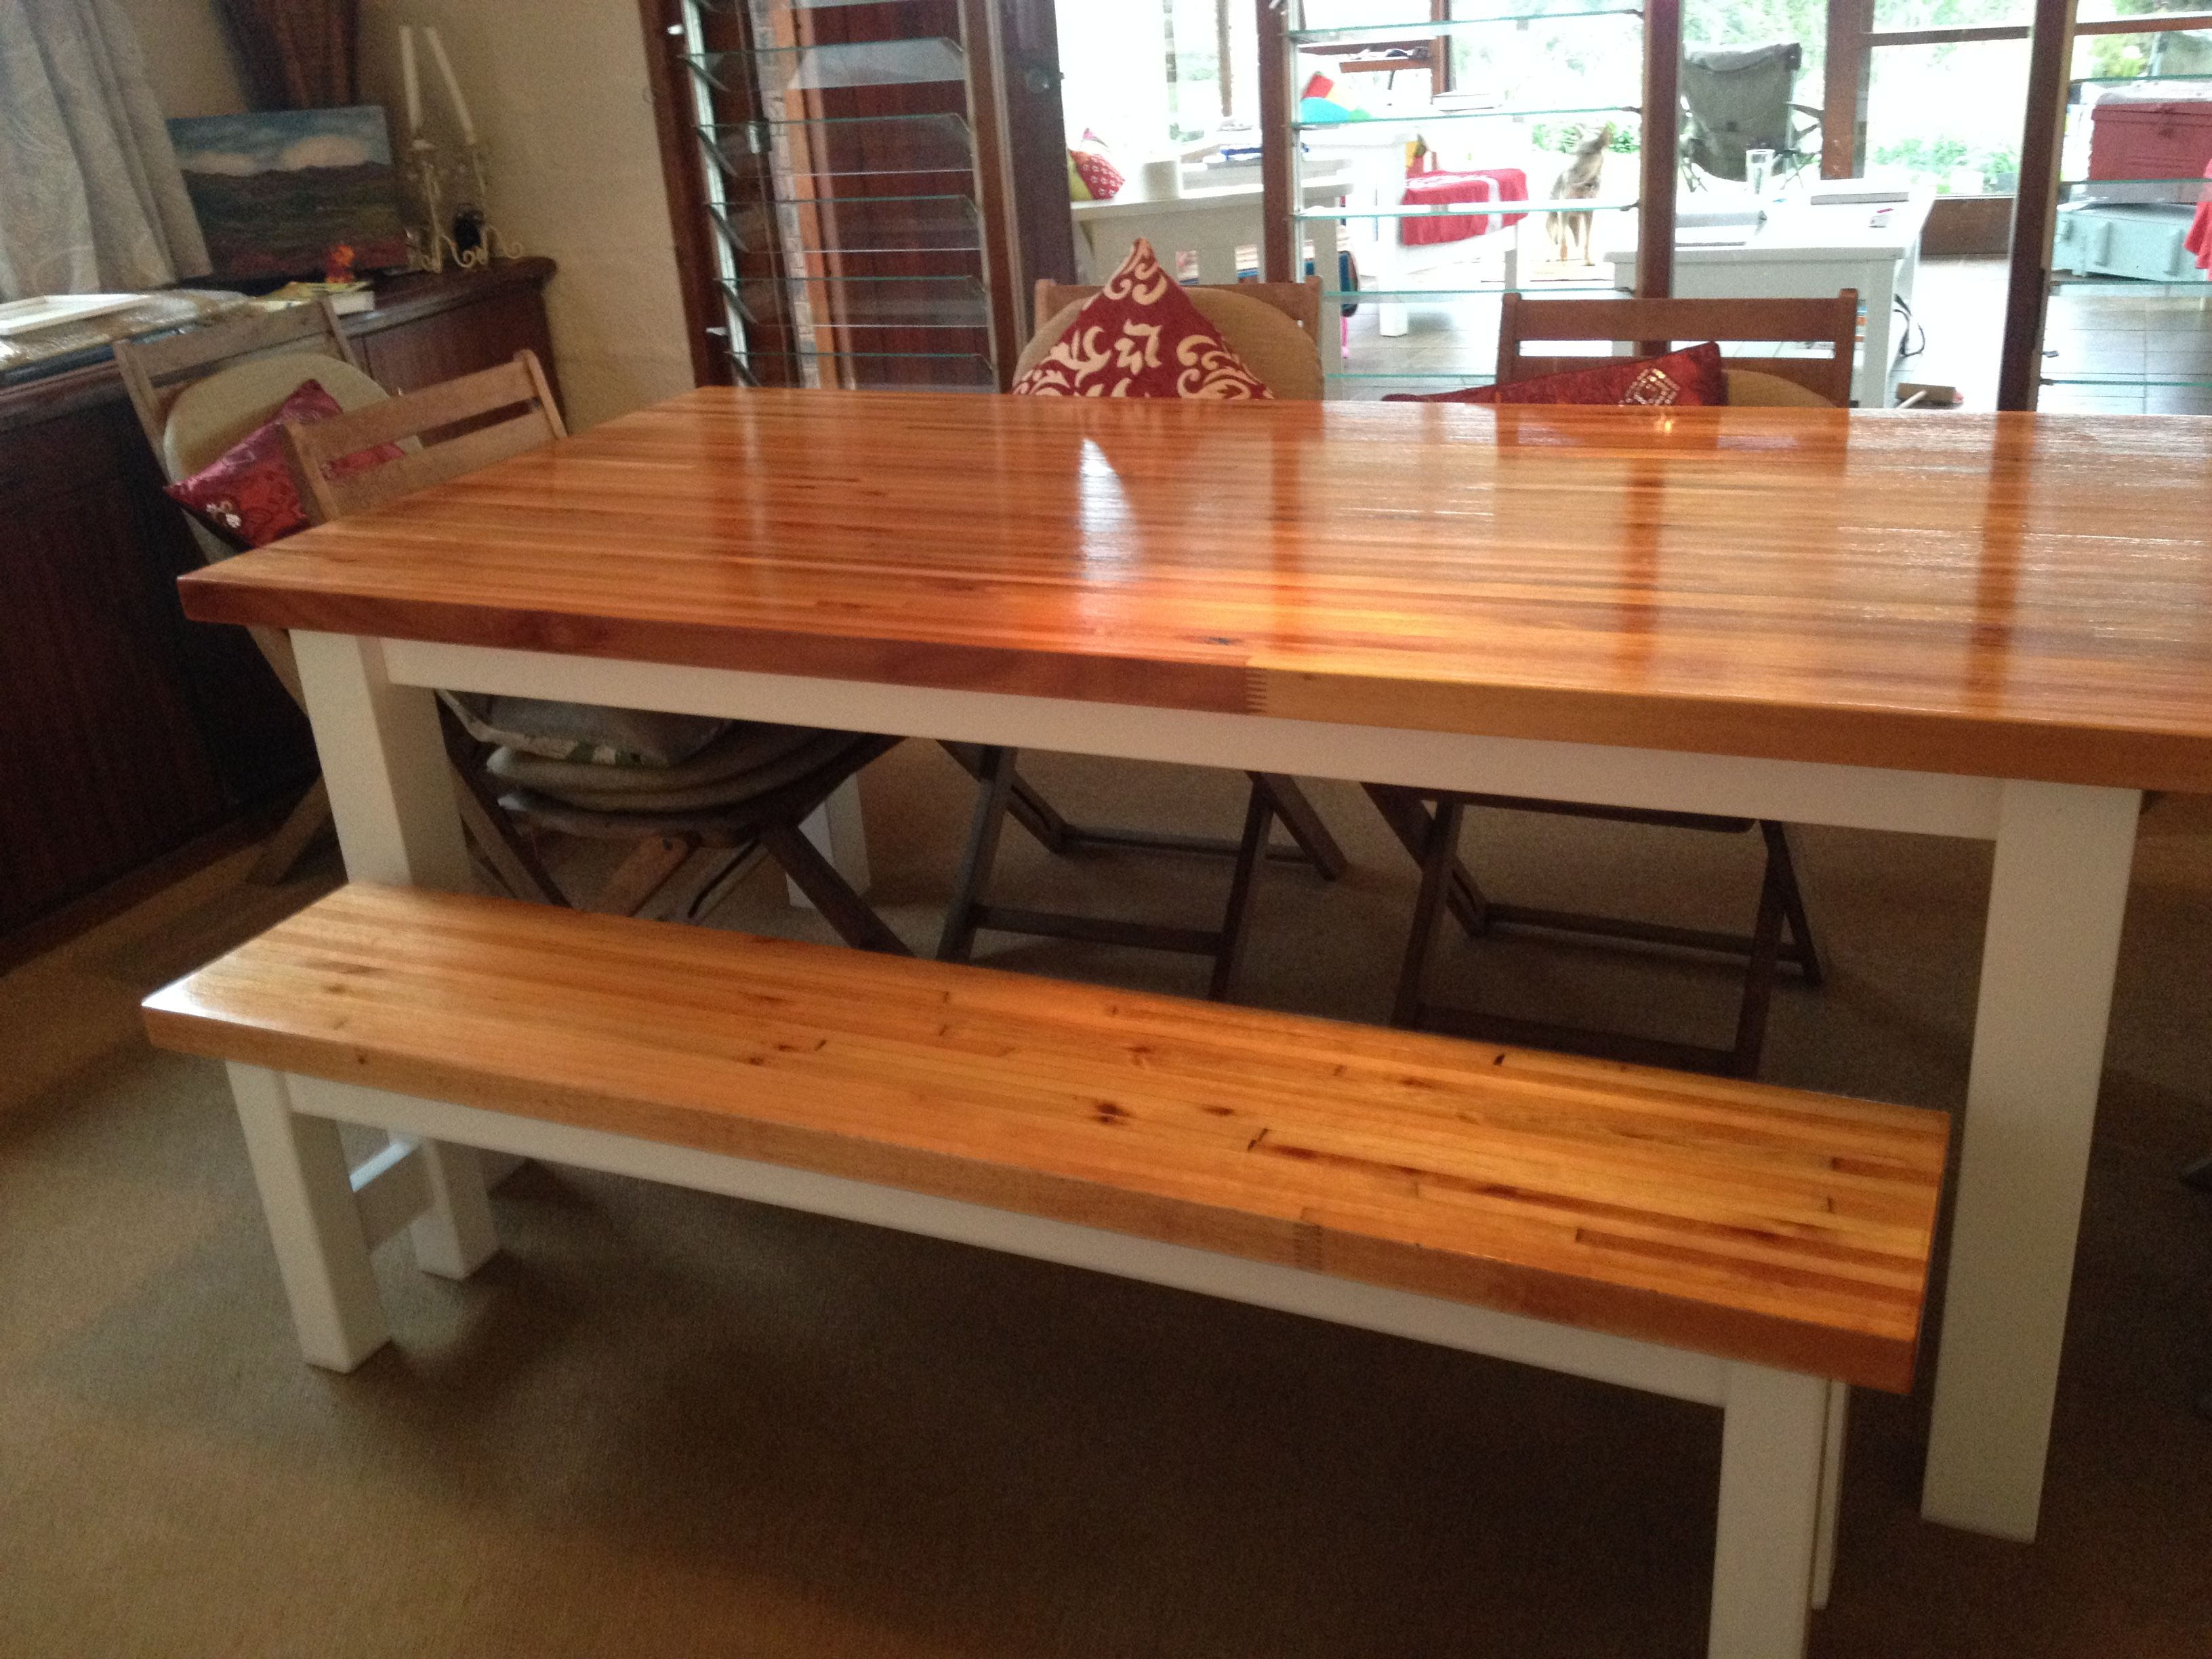 Happy Solid Everyday Kitchen Dining Room Table Bench Laminated Saligna Top